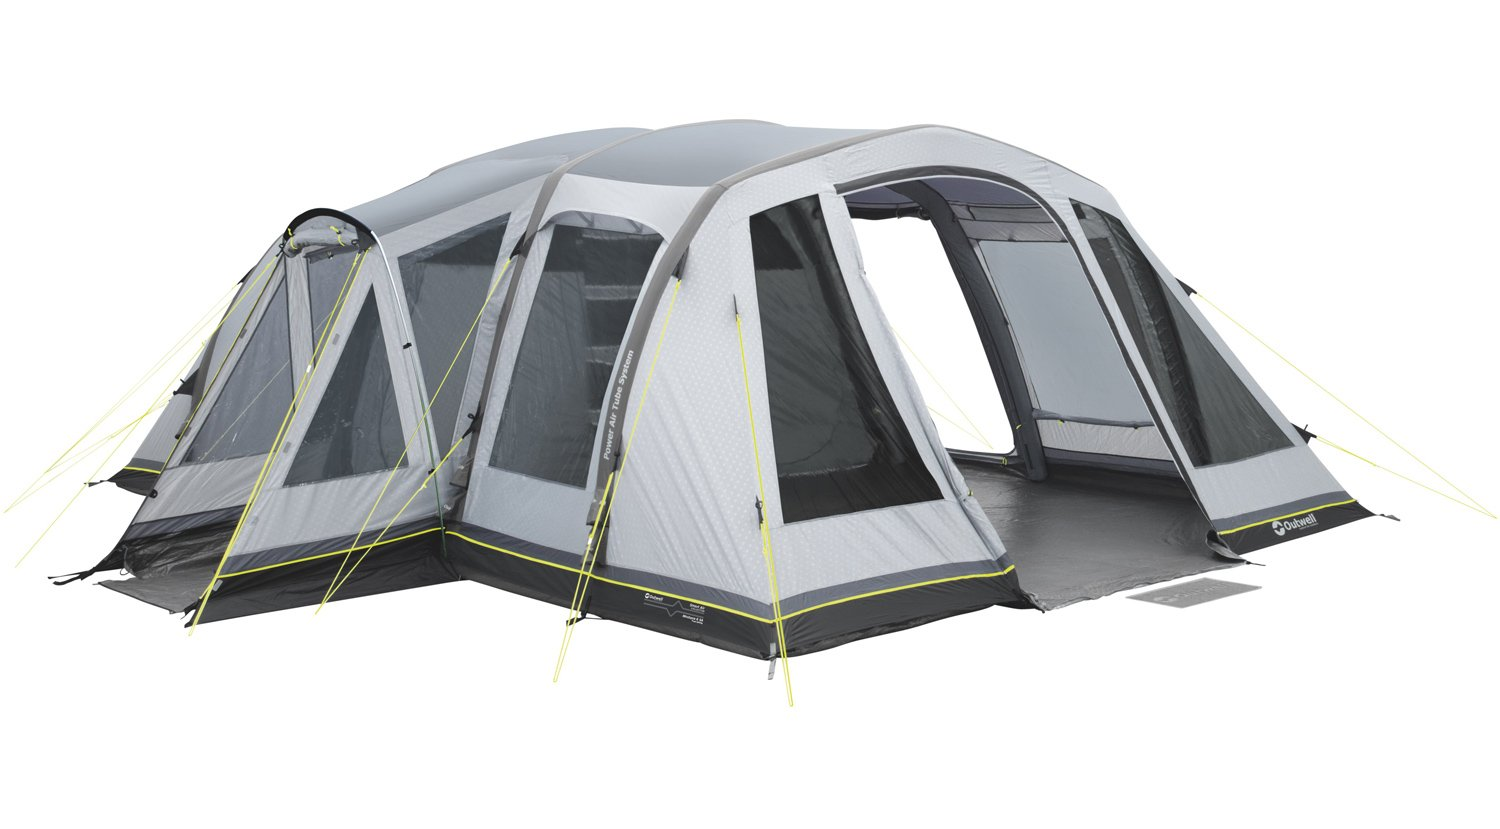 sc 1 st  Amazon UK & Outwell Montana 6AC Tent: Amazon.co.uk: Sports u0026 Outdoors